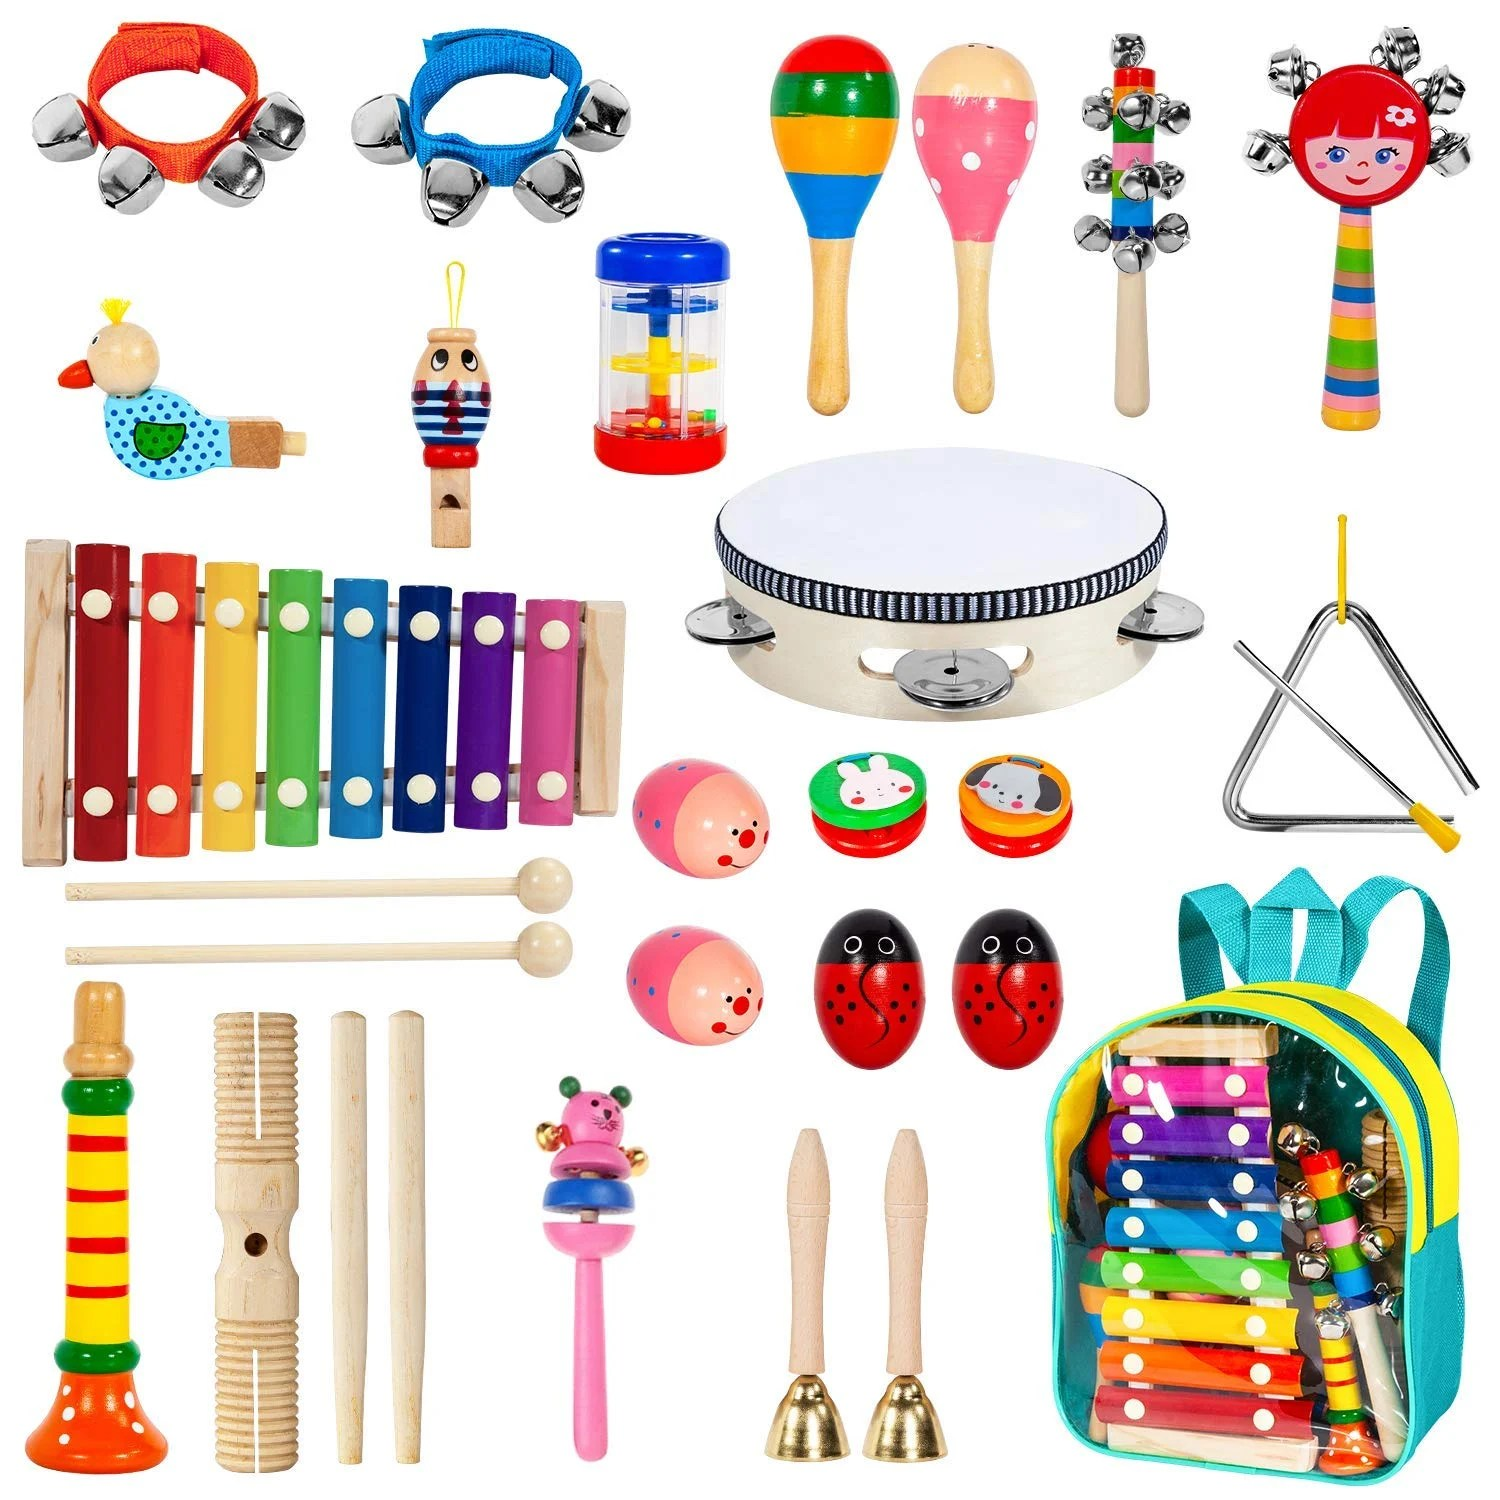 Toddler Musical Instruments With Xylophone Ailuki 24pcs 17